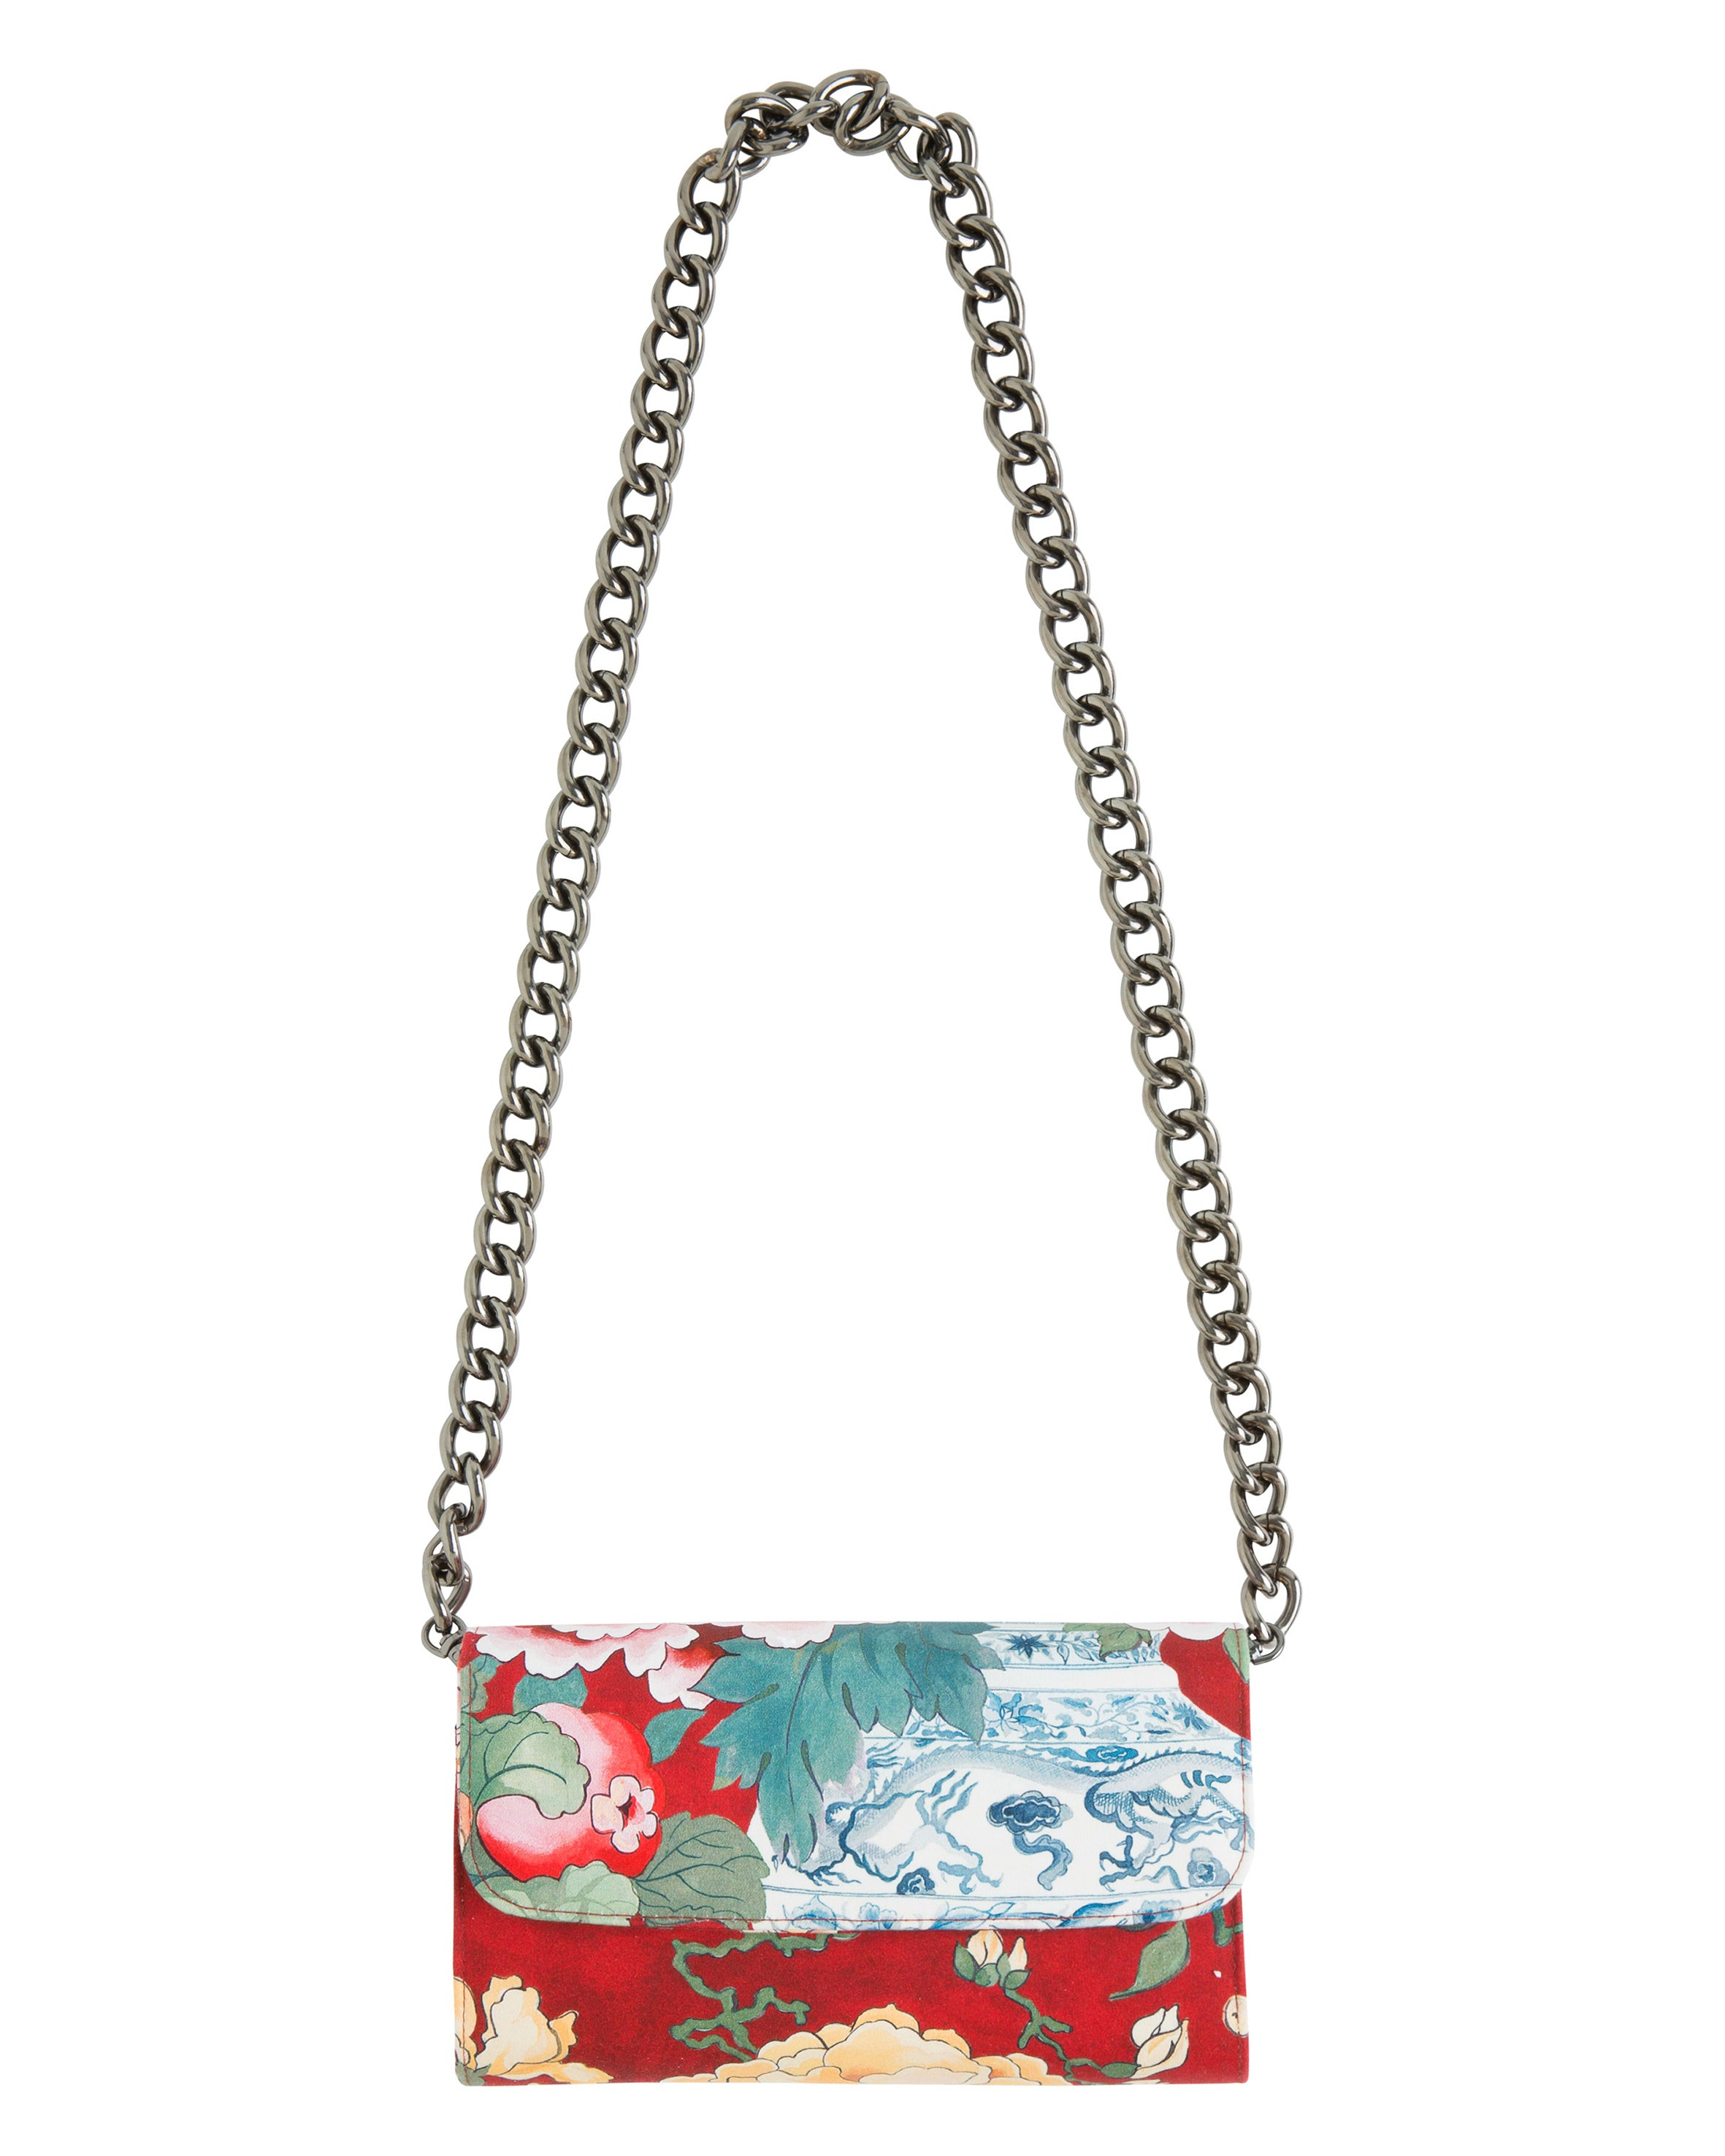 CHINOISERIE CLUTCH IN RED VICTOR PRINT